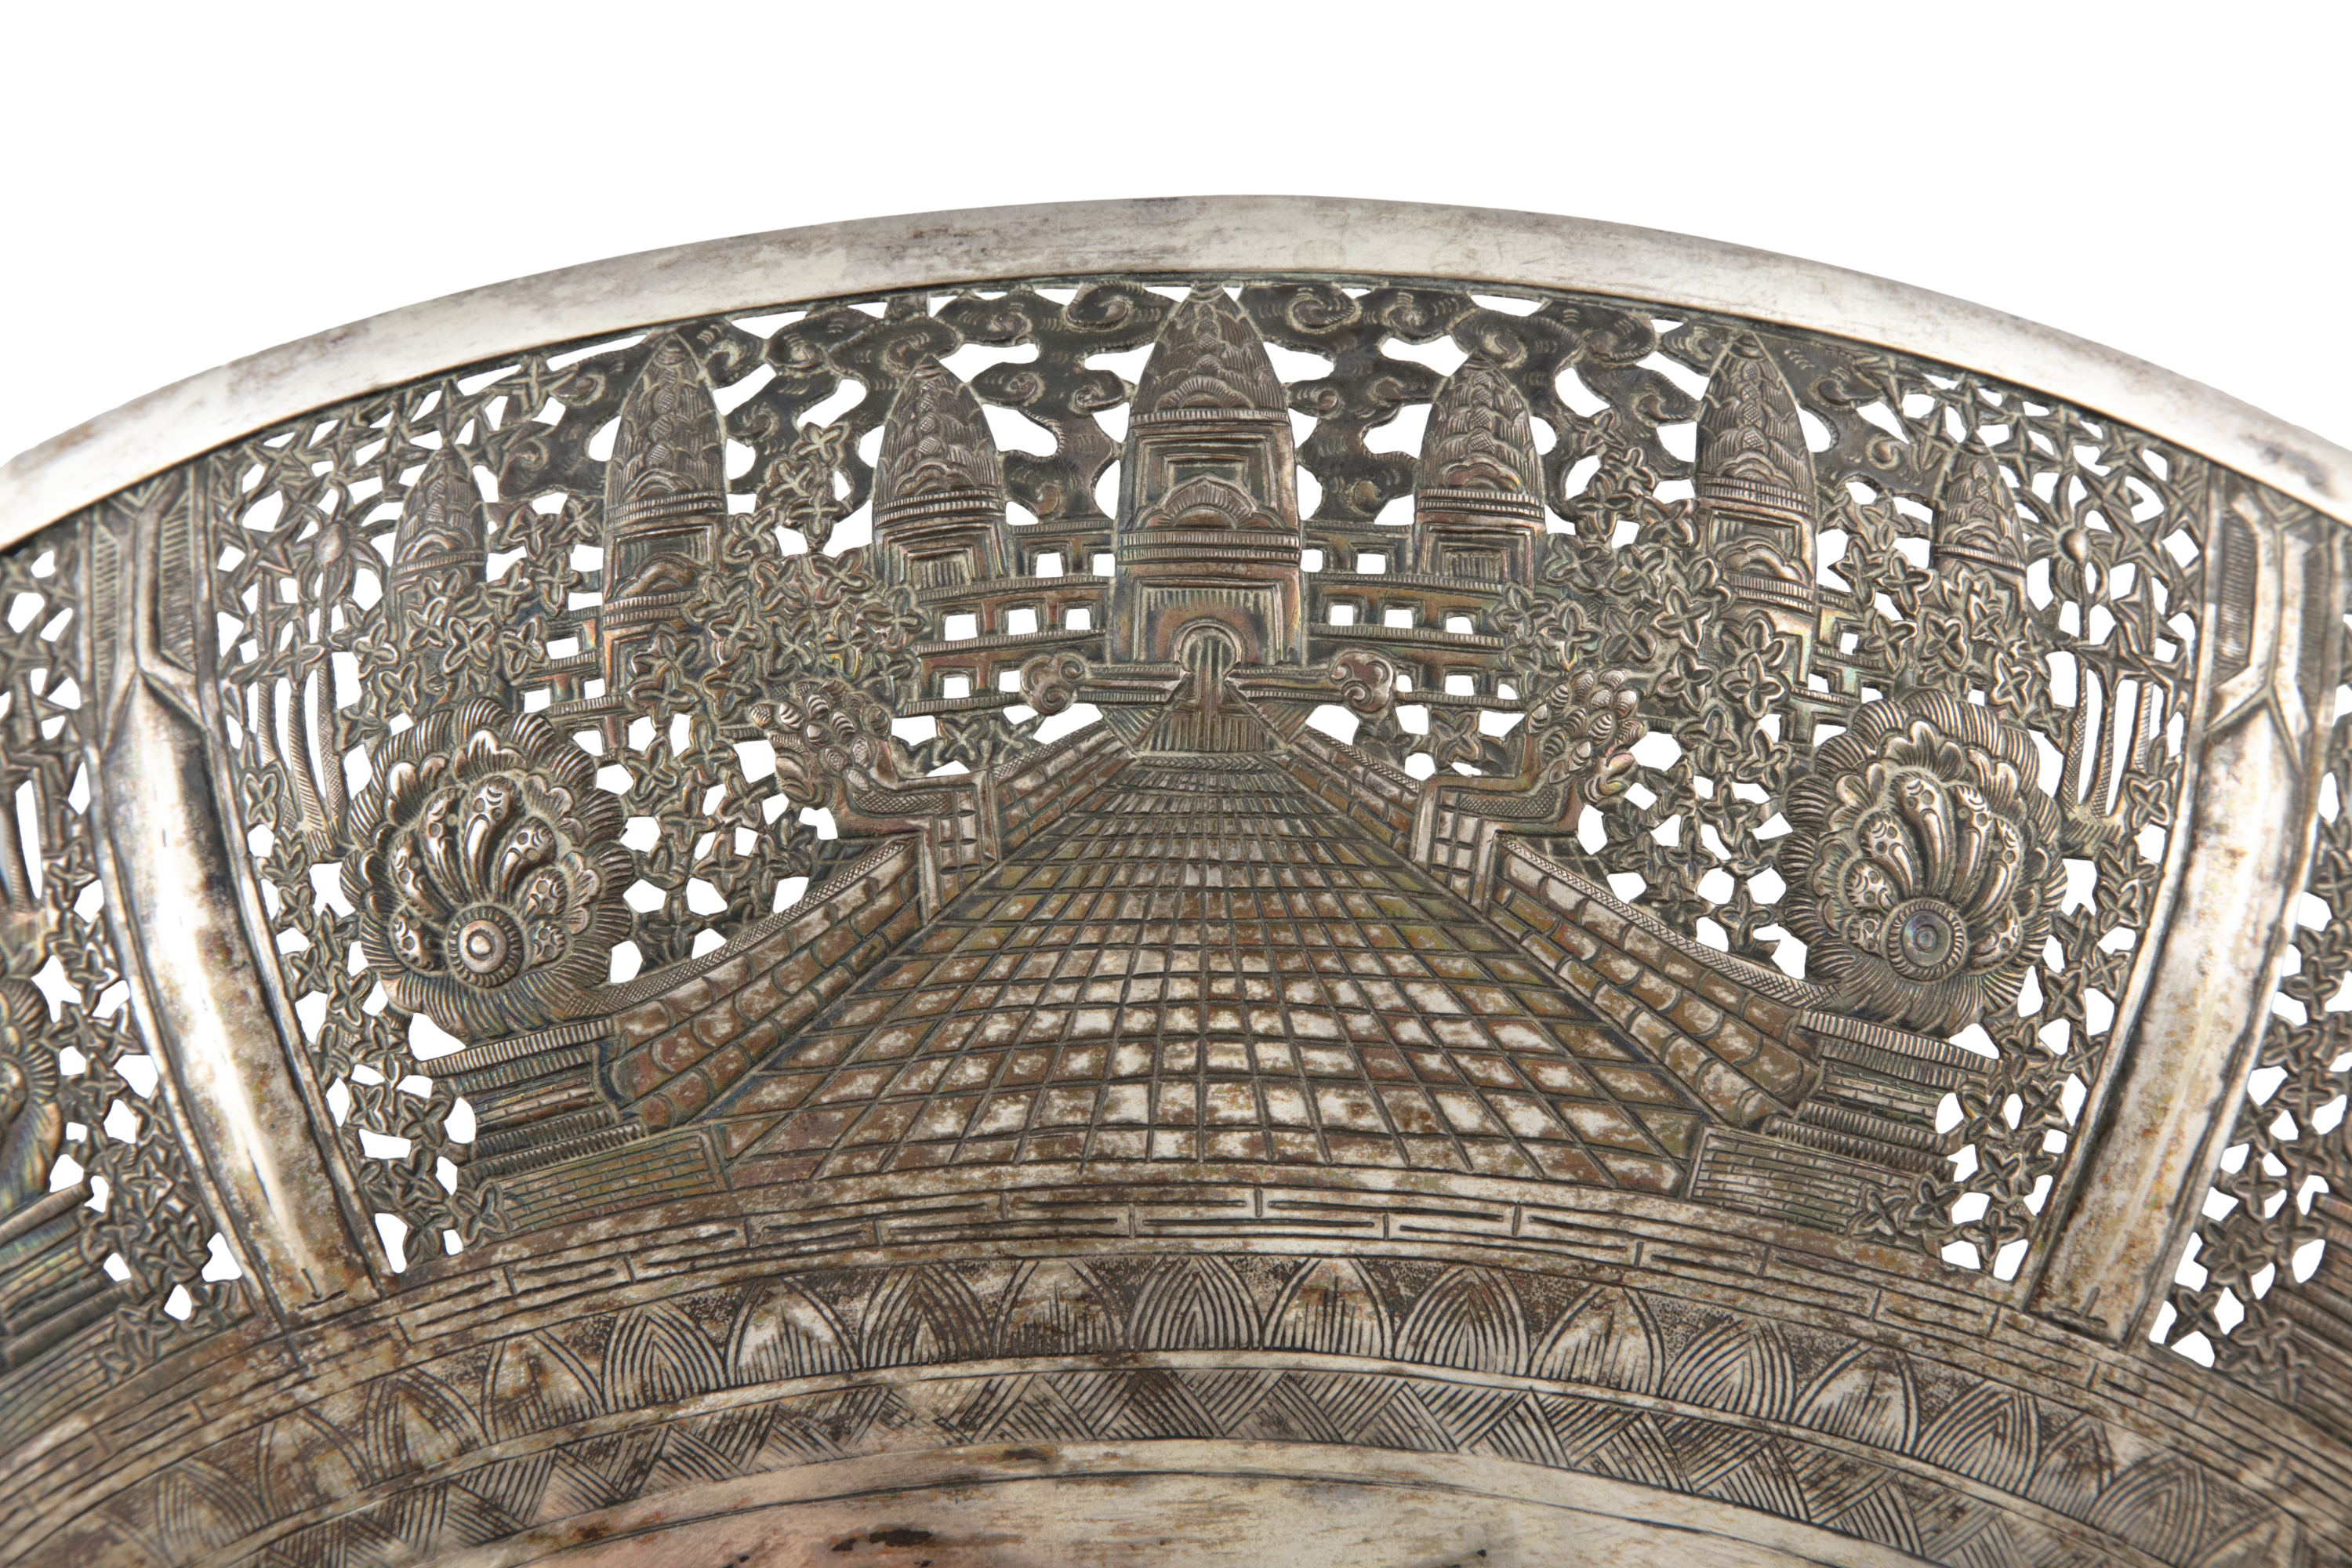 A LARGE RETICULATED 'ANGKOR VAT' SILVER BOWL Siam / Indochina, 20th century H: 10 cm - D: 28,5 cm - Image 2 of 4